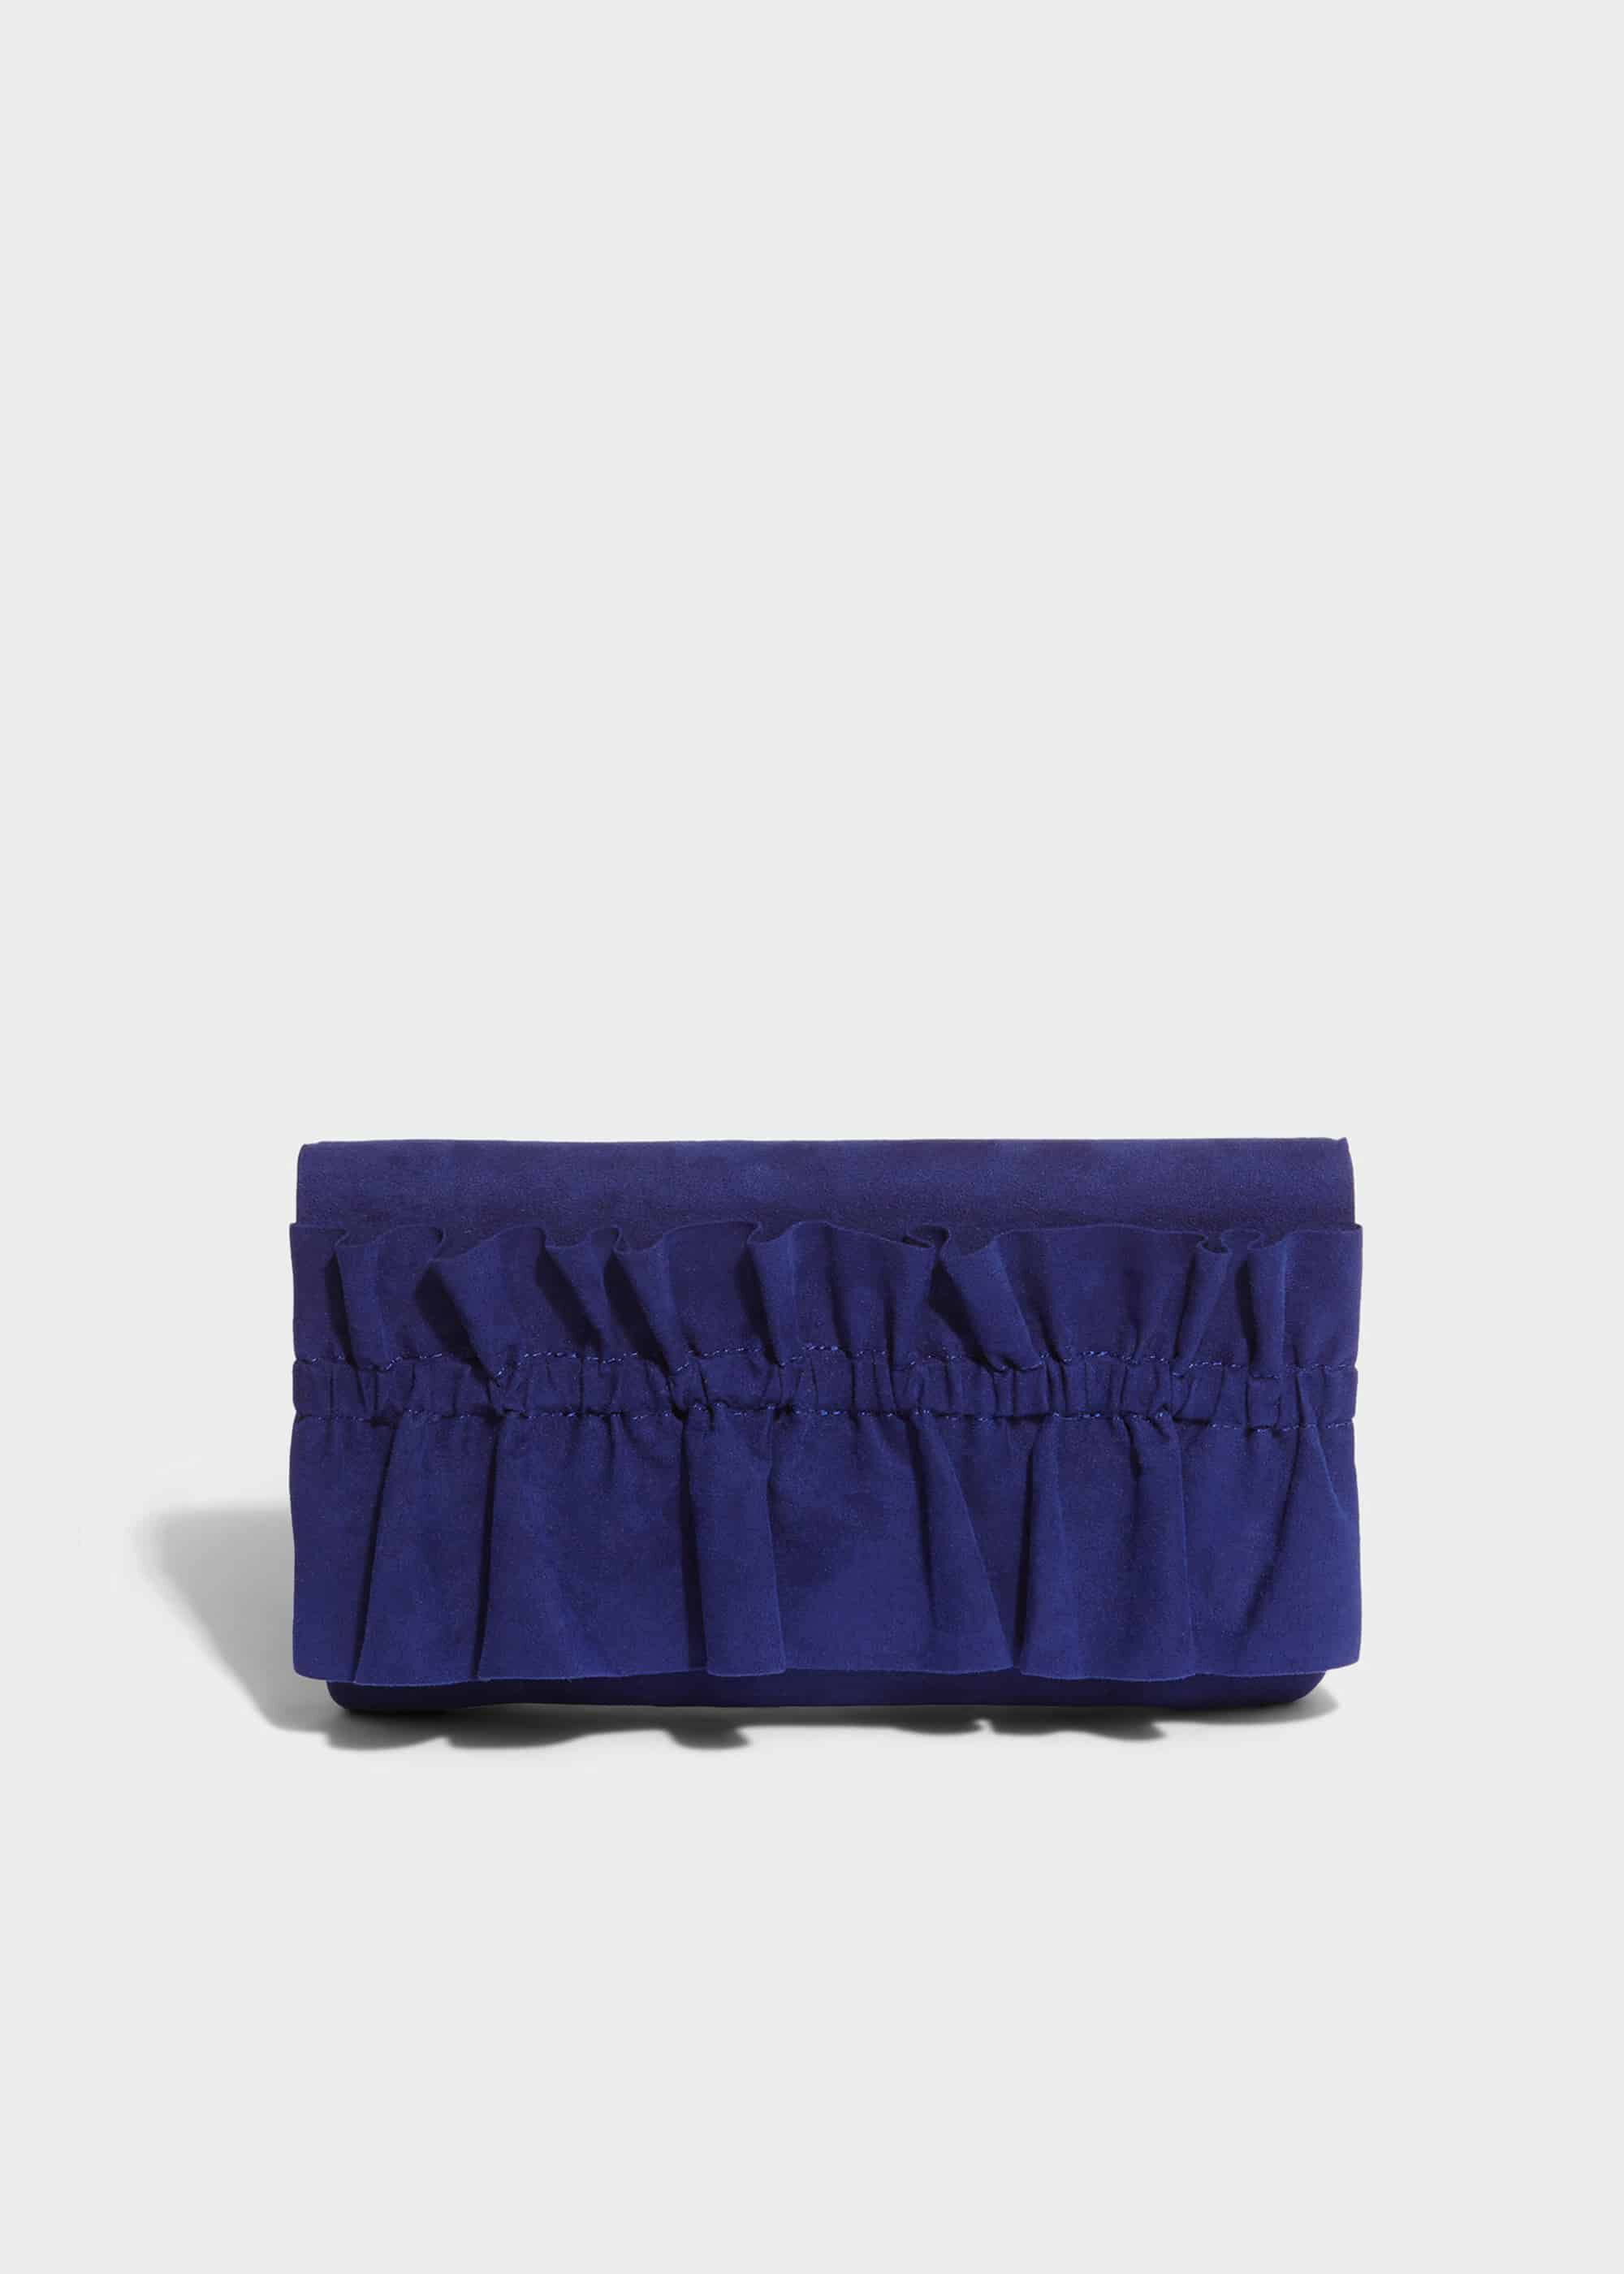 Phase Eight Romy Ruffle Clutch Bag, Blue, Bag